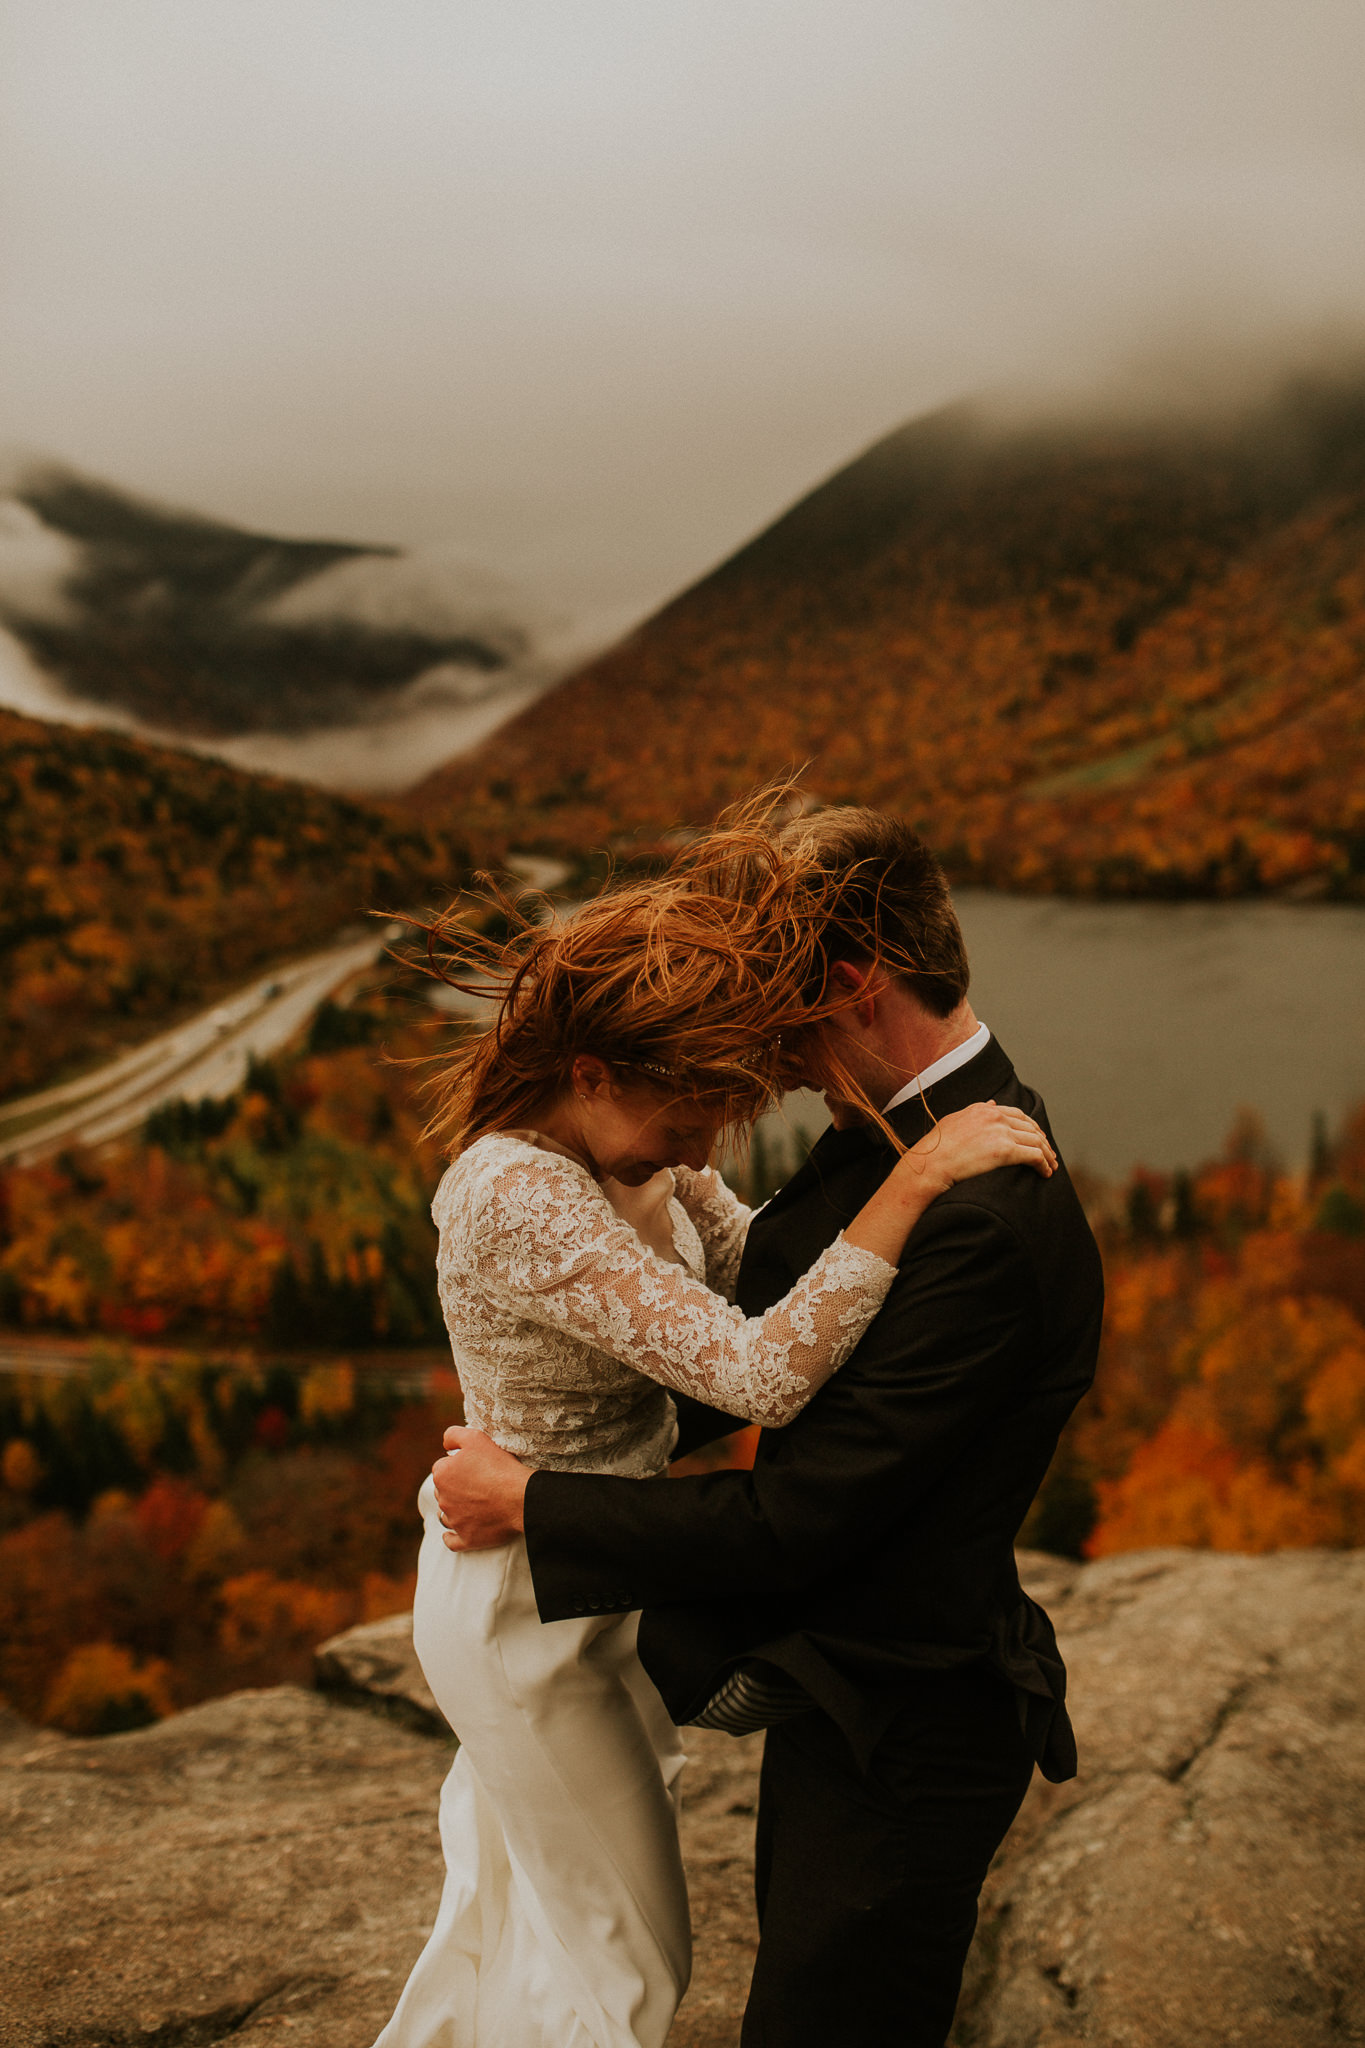 Intimate wedding in the fall. New hampshire elopement in Autumn